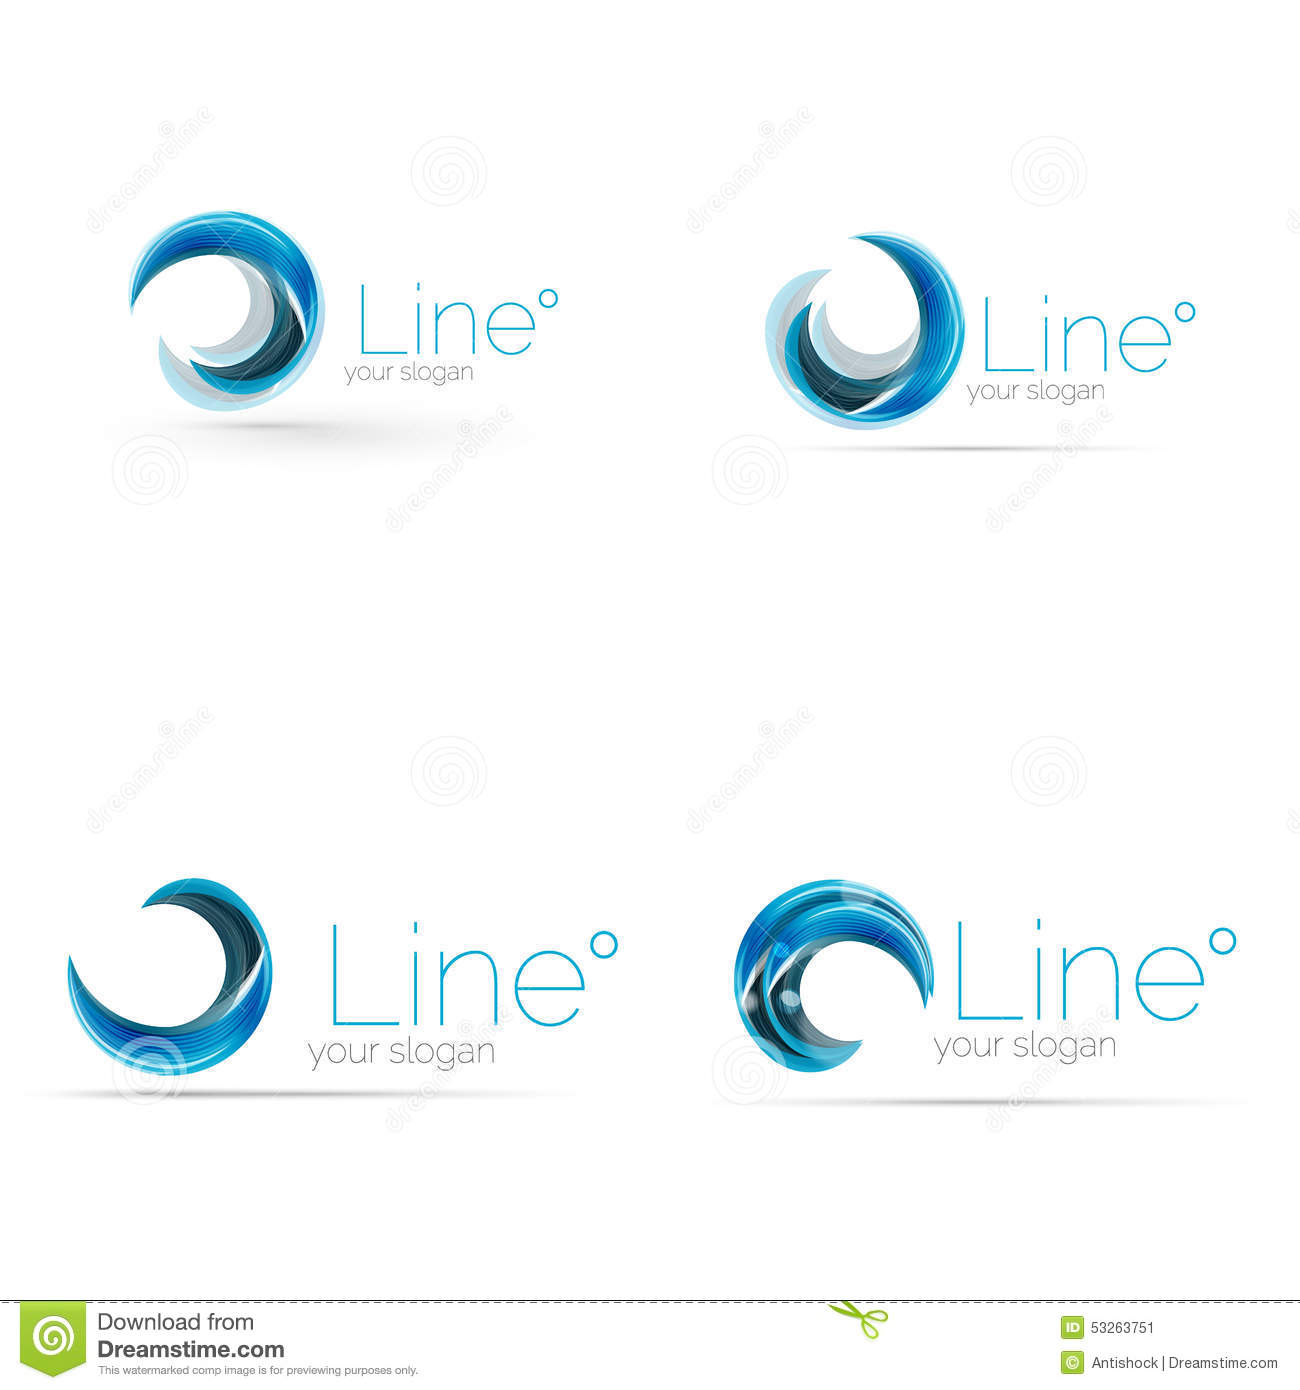 Company Logo Design Ideas company logo design ideas Company Logo Design Ideas